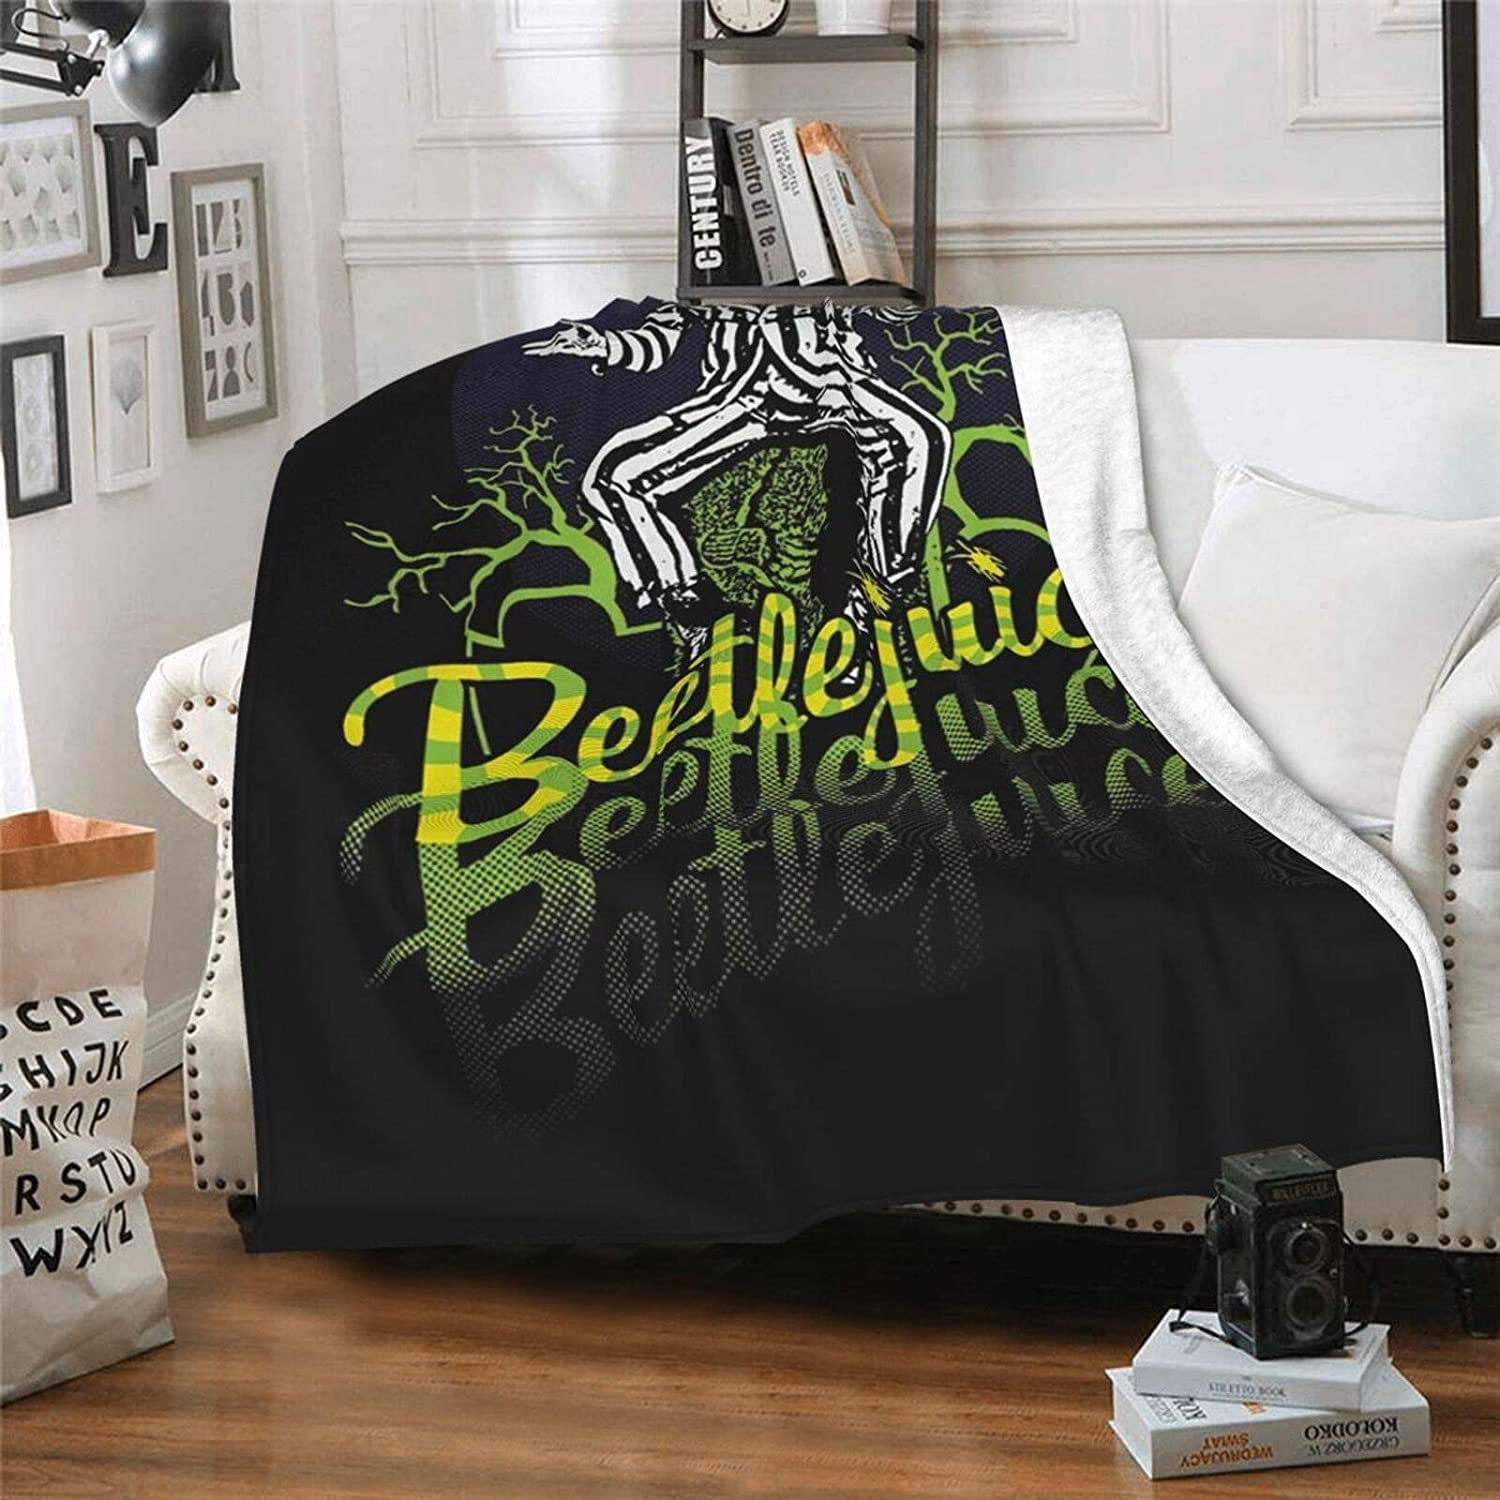 RexMillena Micro Beetlejuice Blanket Cheap mail order shopping Ultra-Soft All stores are sold Lightweight Fun